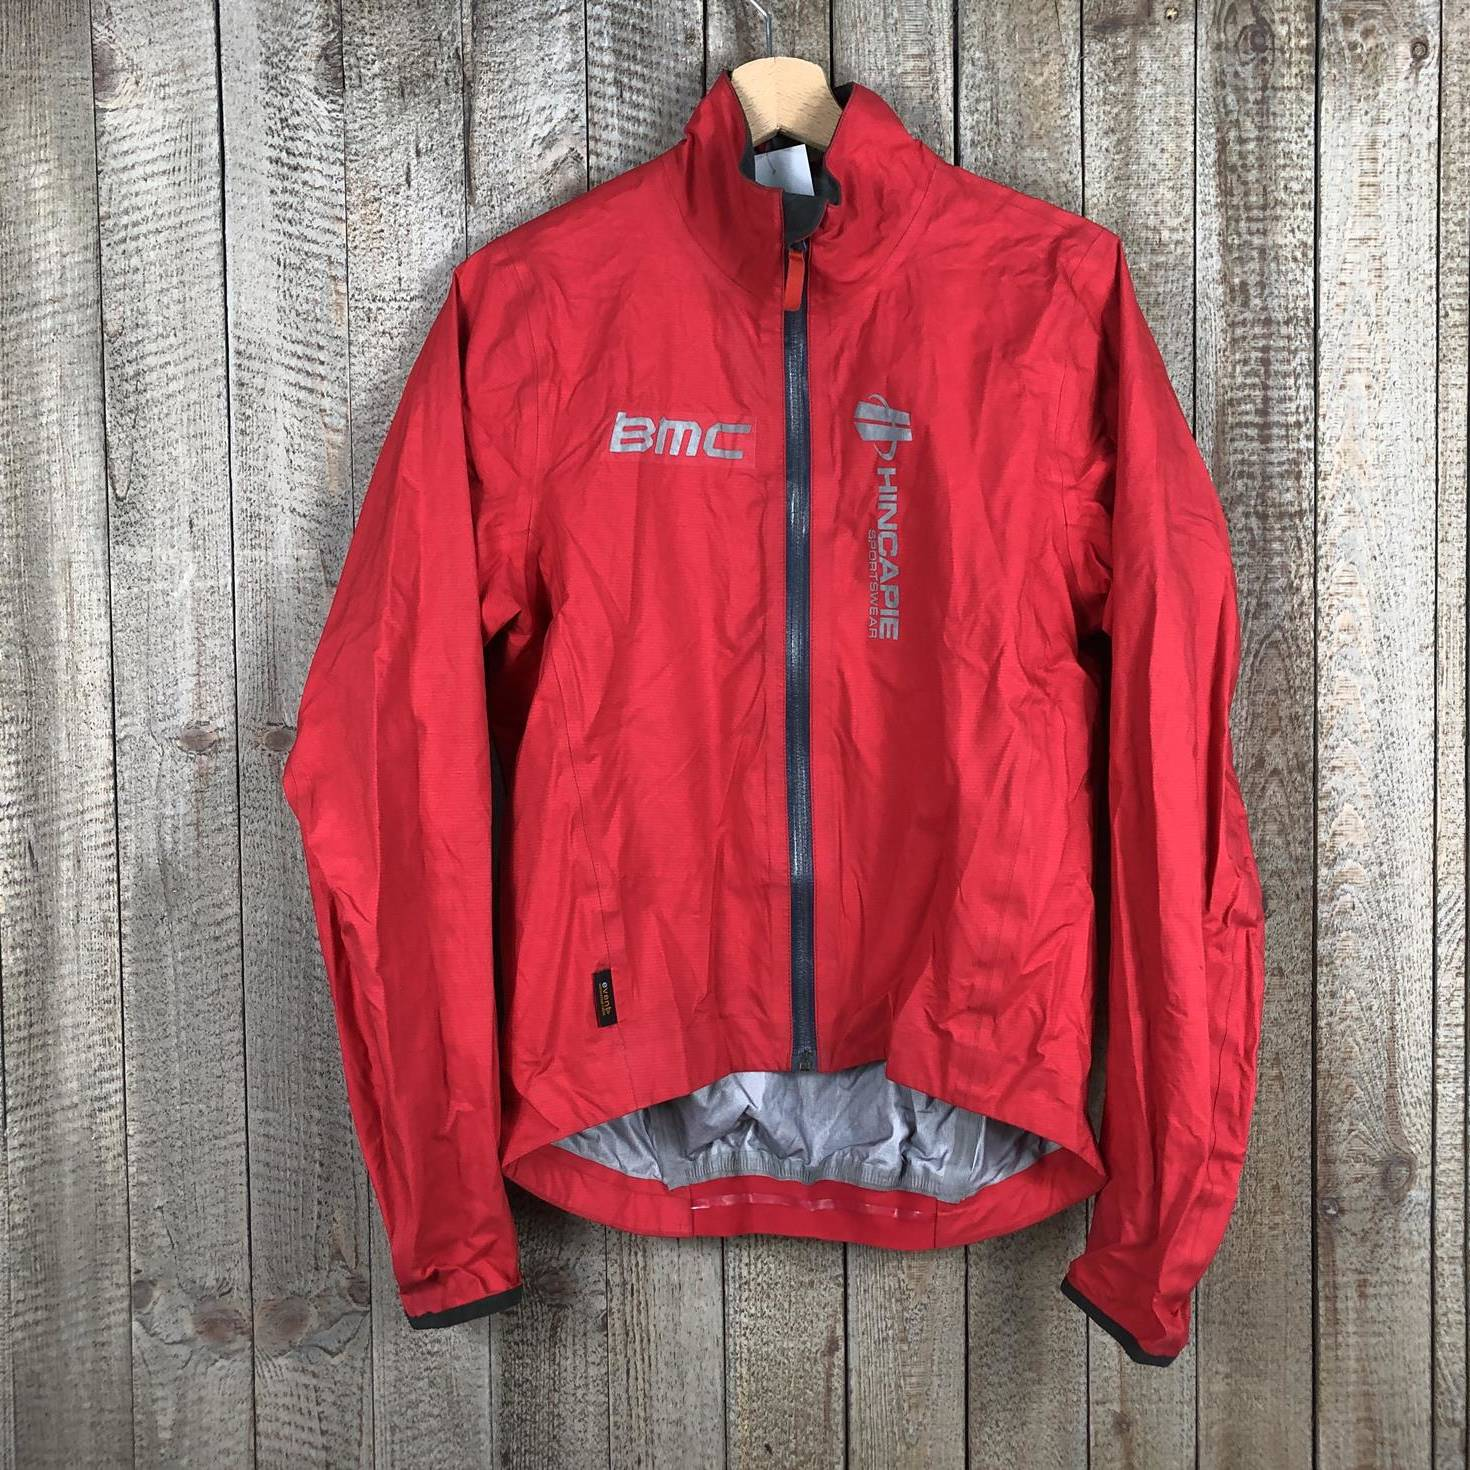 Rain Jacket - BMC Team 00003393 (1)